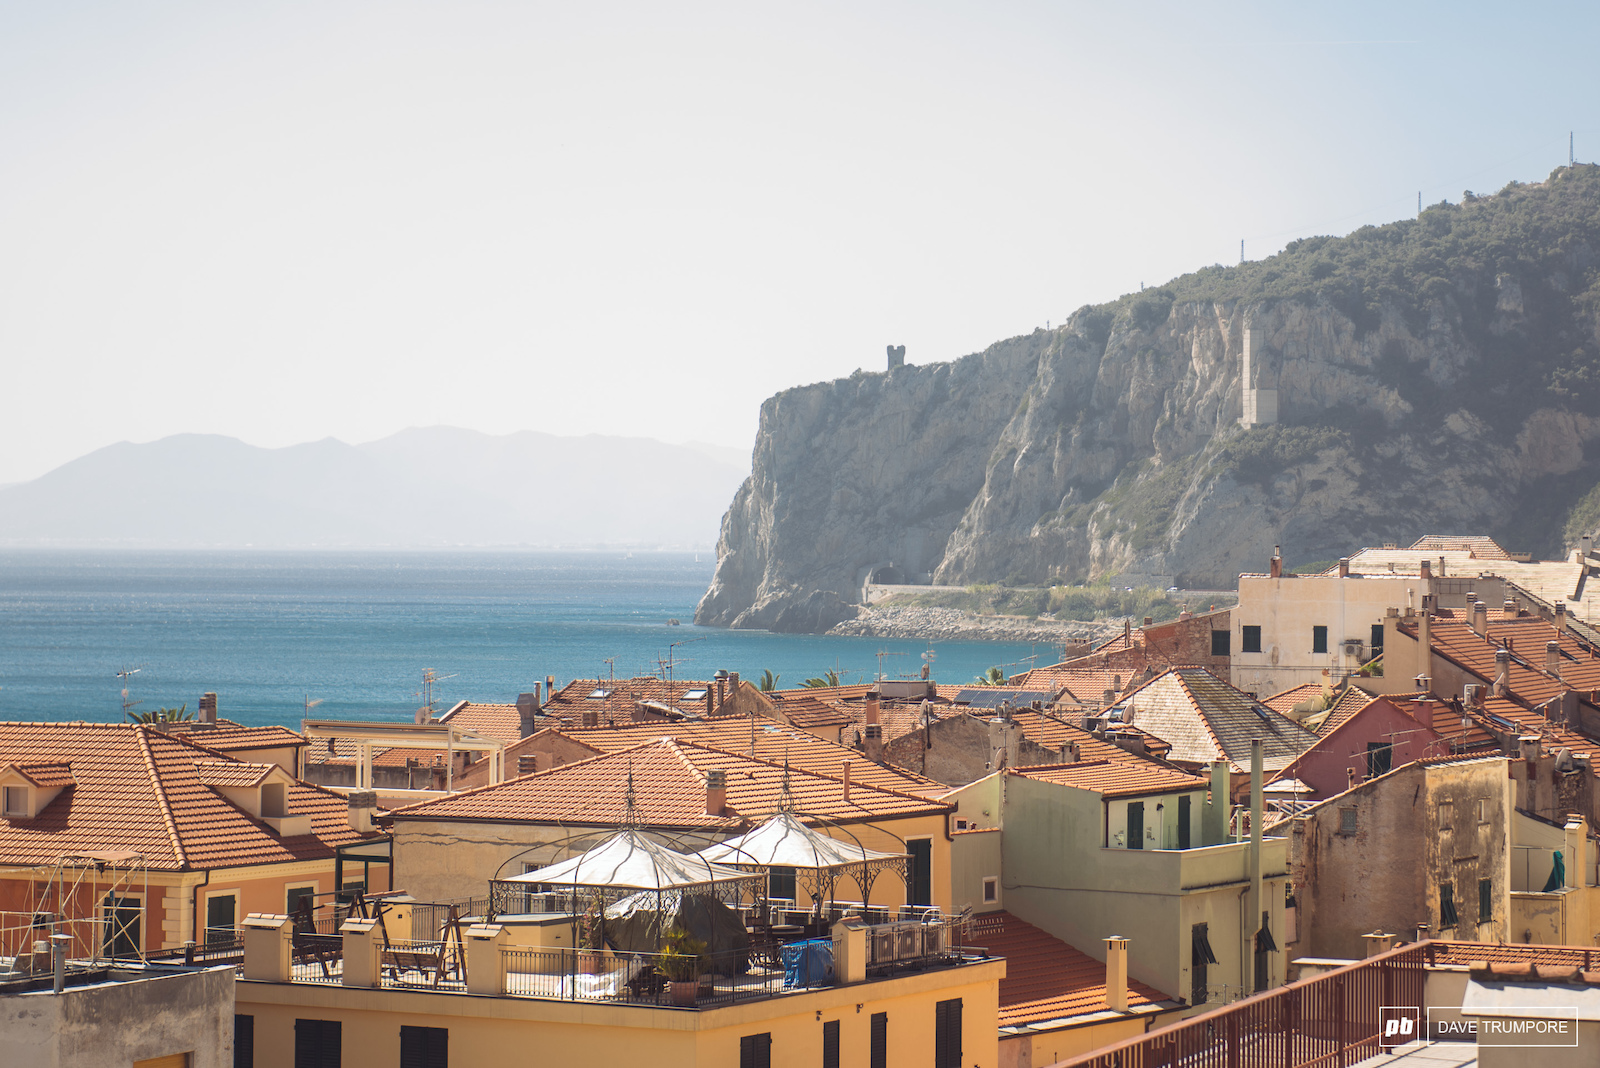 Hot and hazy in Finale Ligure